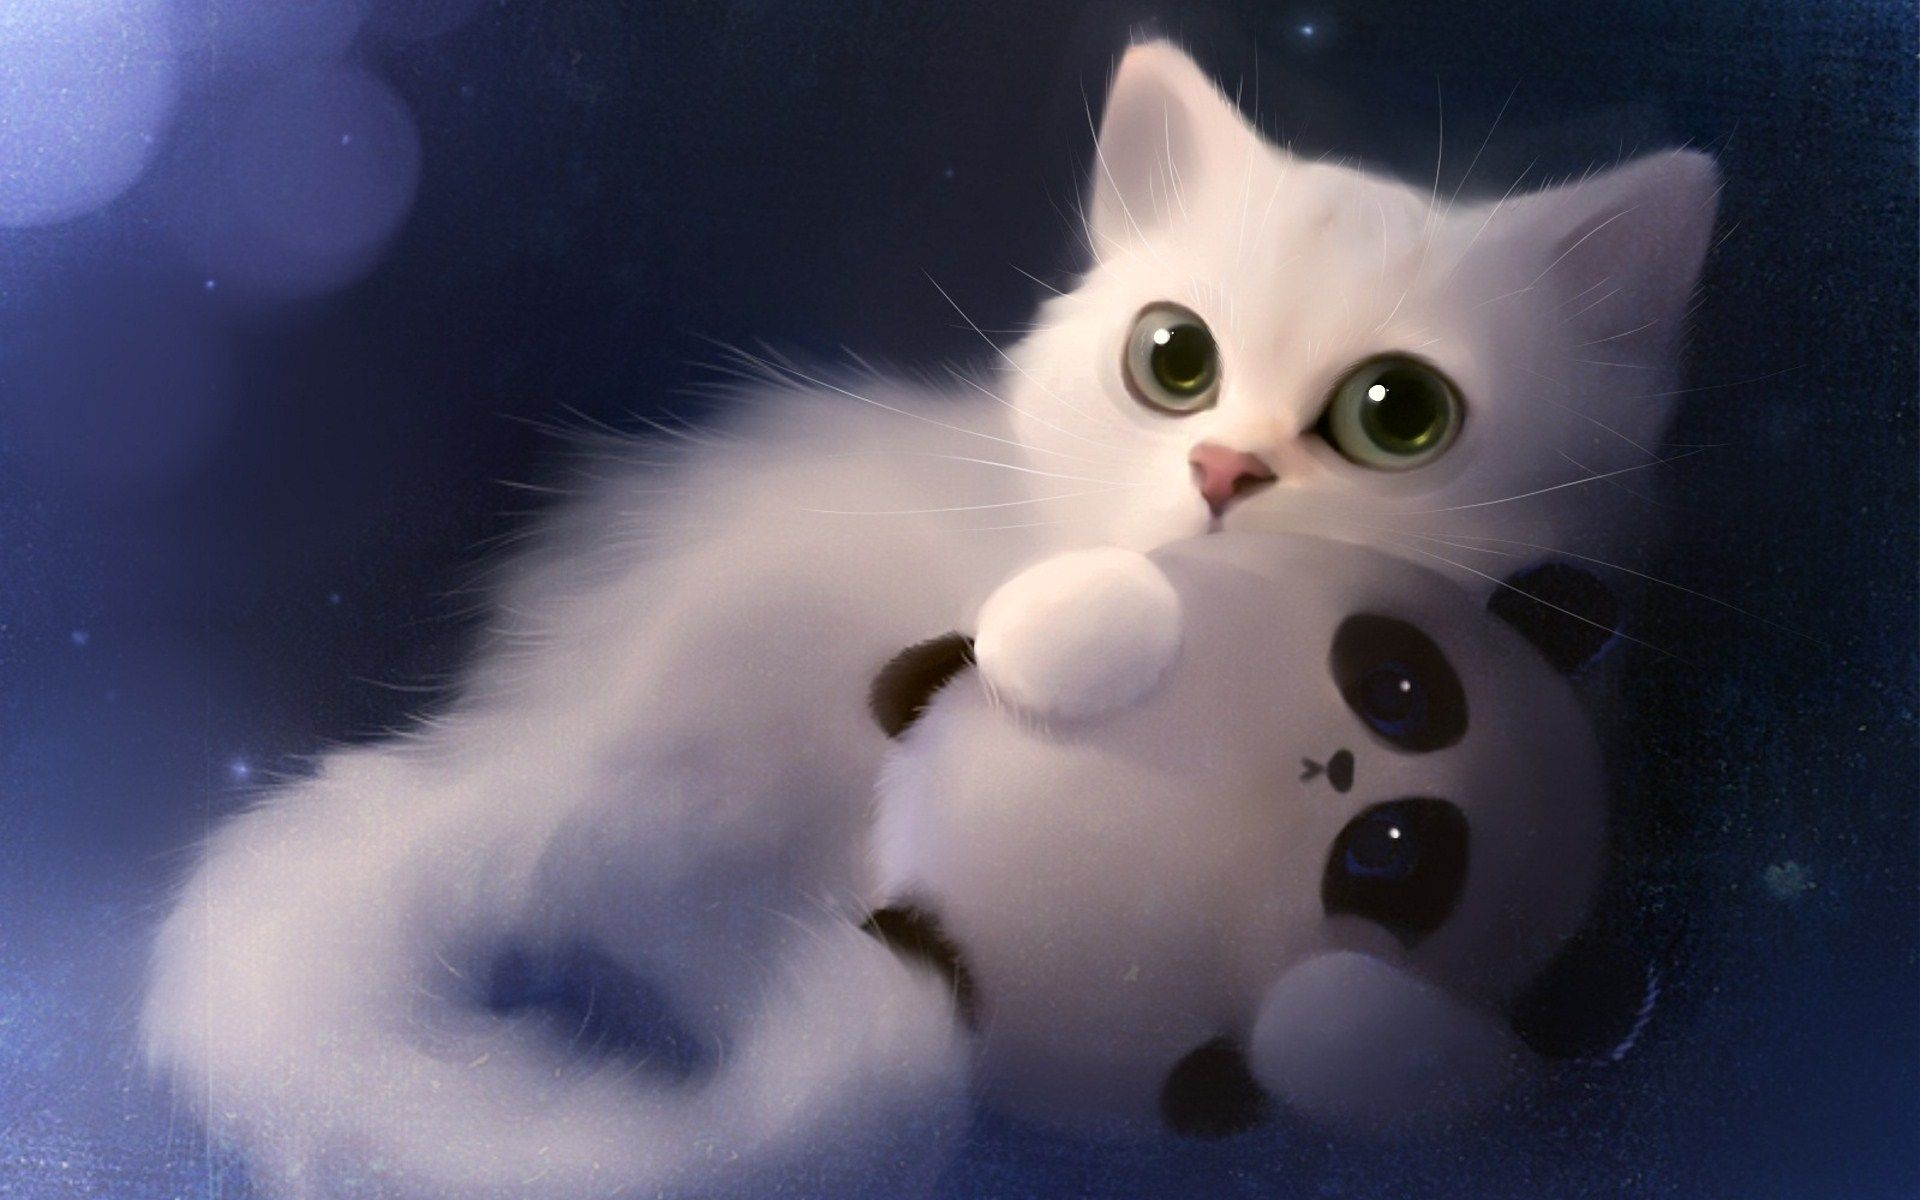 Cute Panda Wallpapers Cute Anime Cat Cat Art Cat Artwork